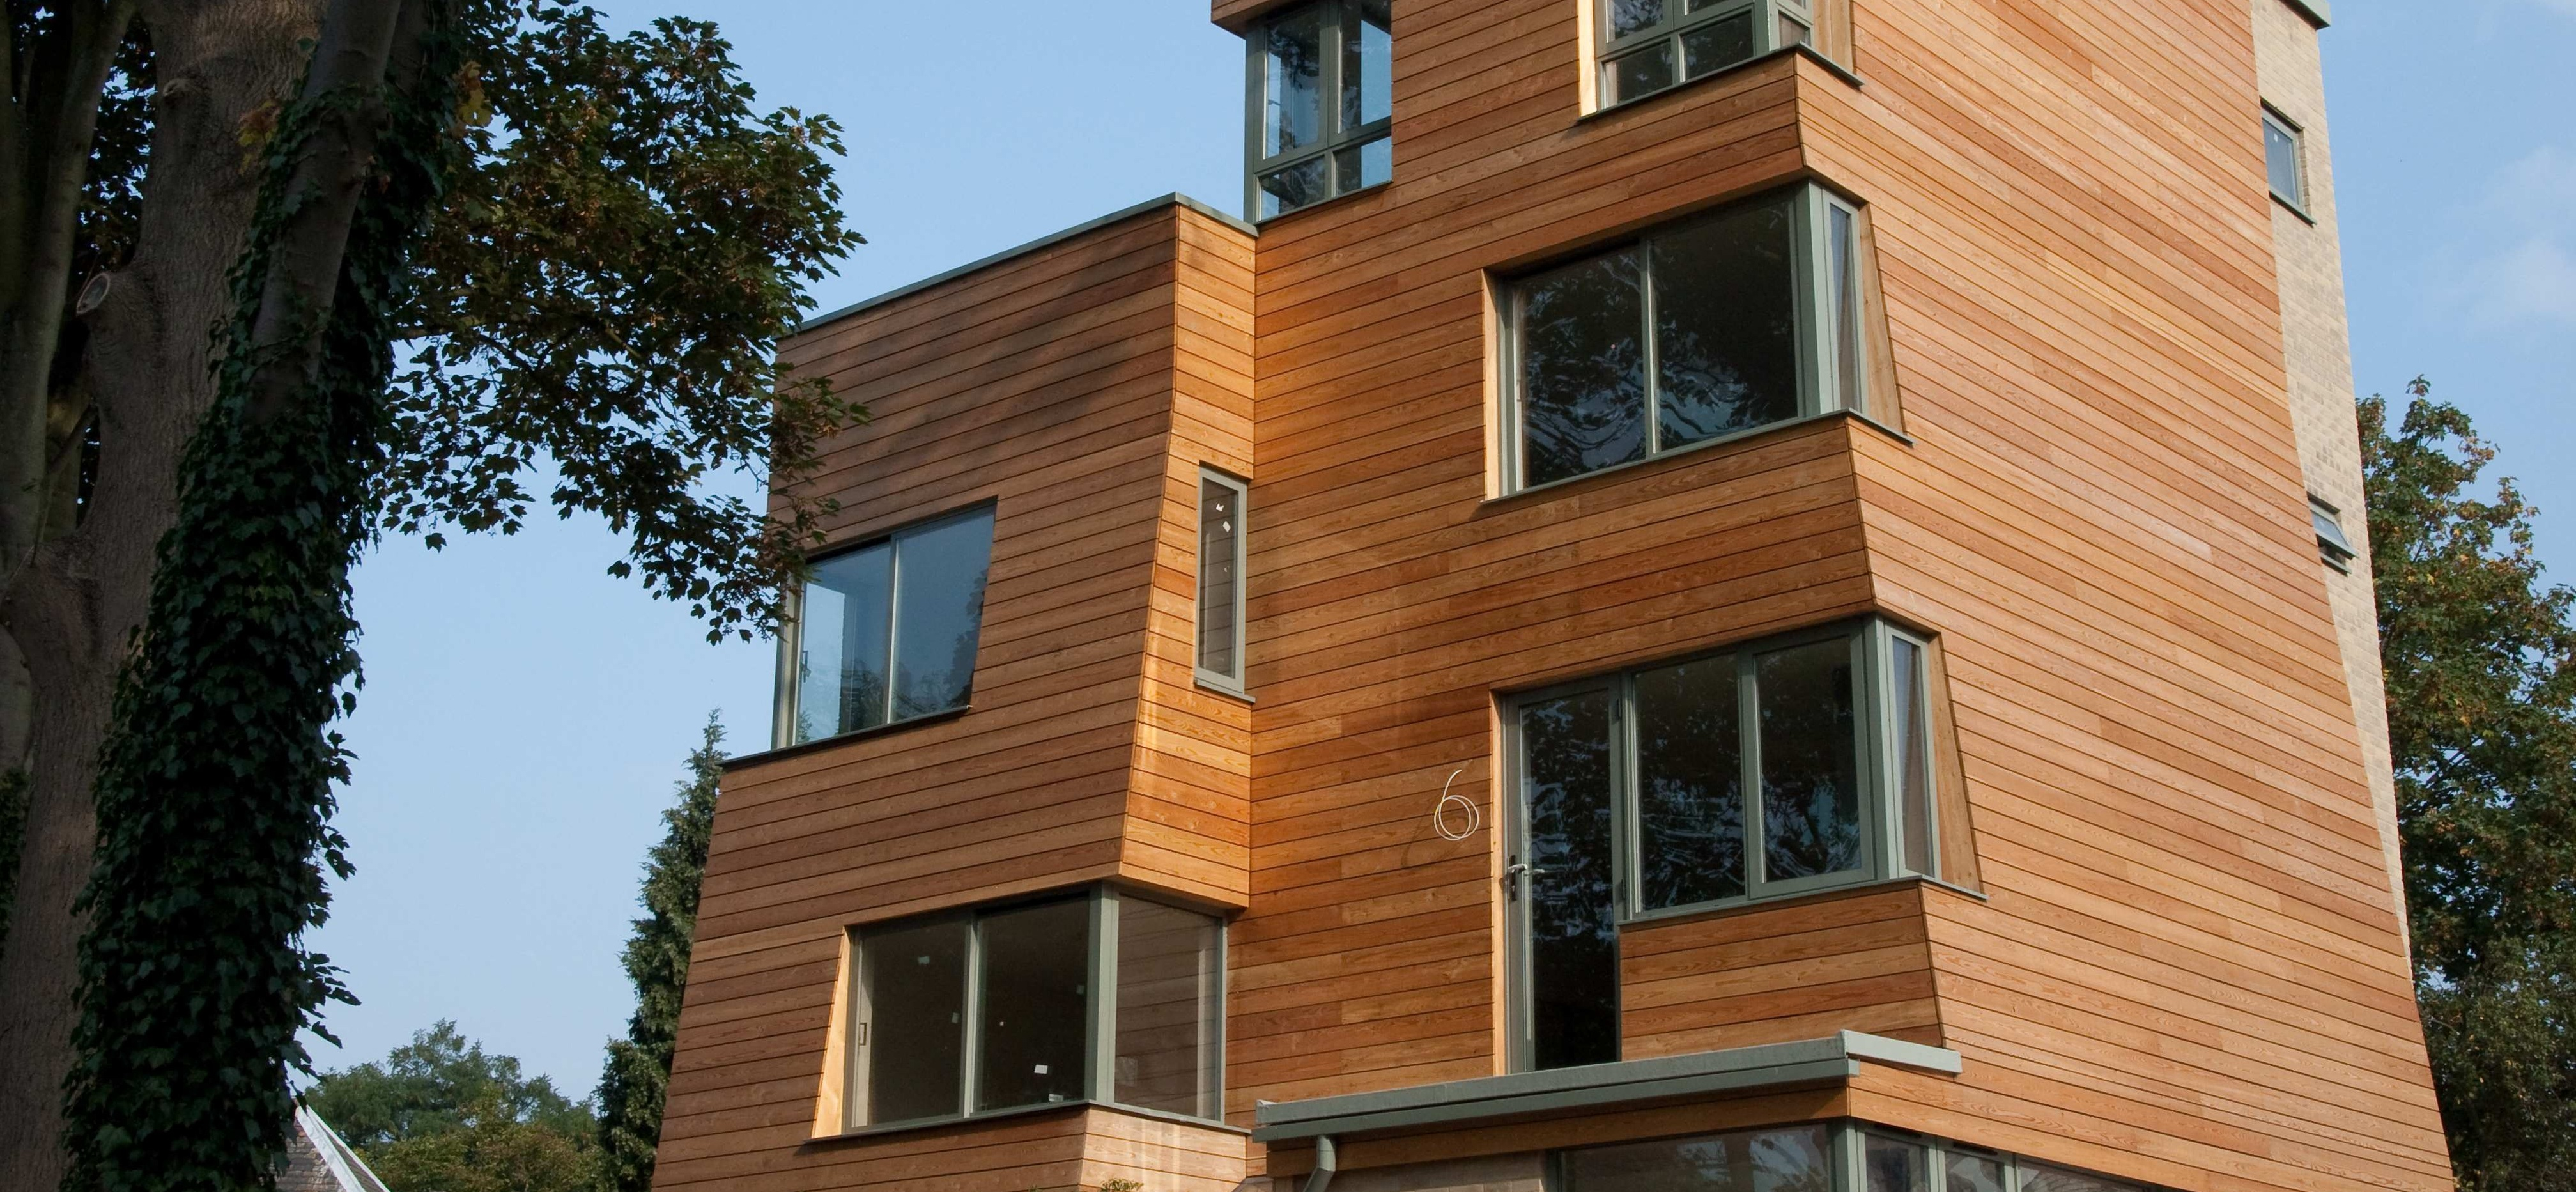 How To Maintain Your Timber Cladding